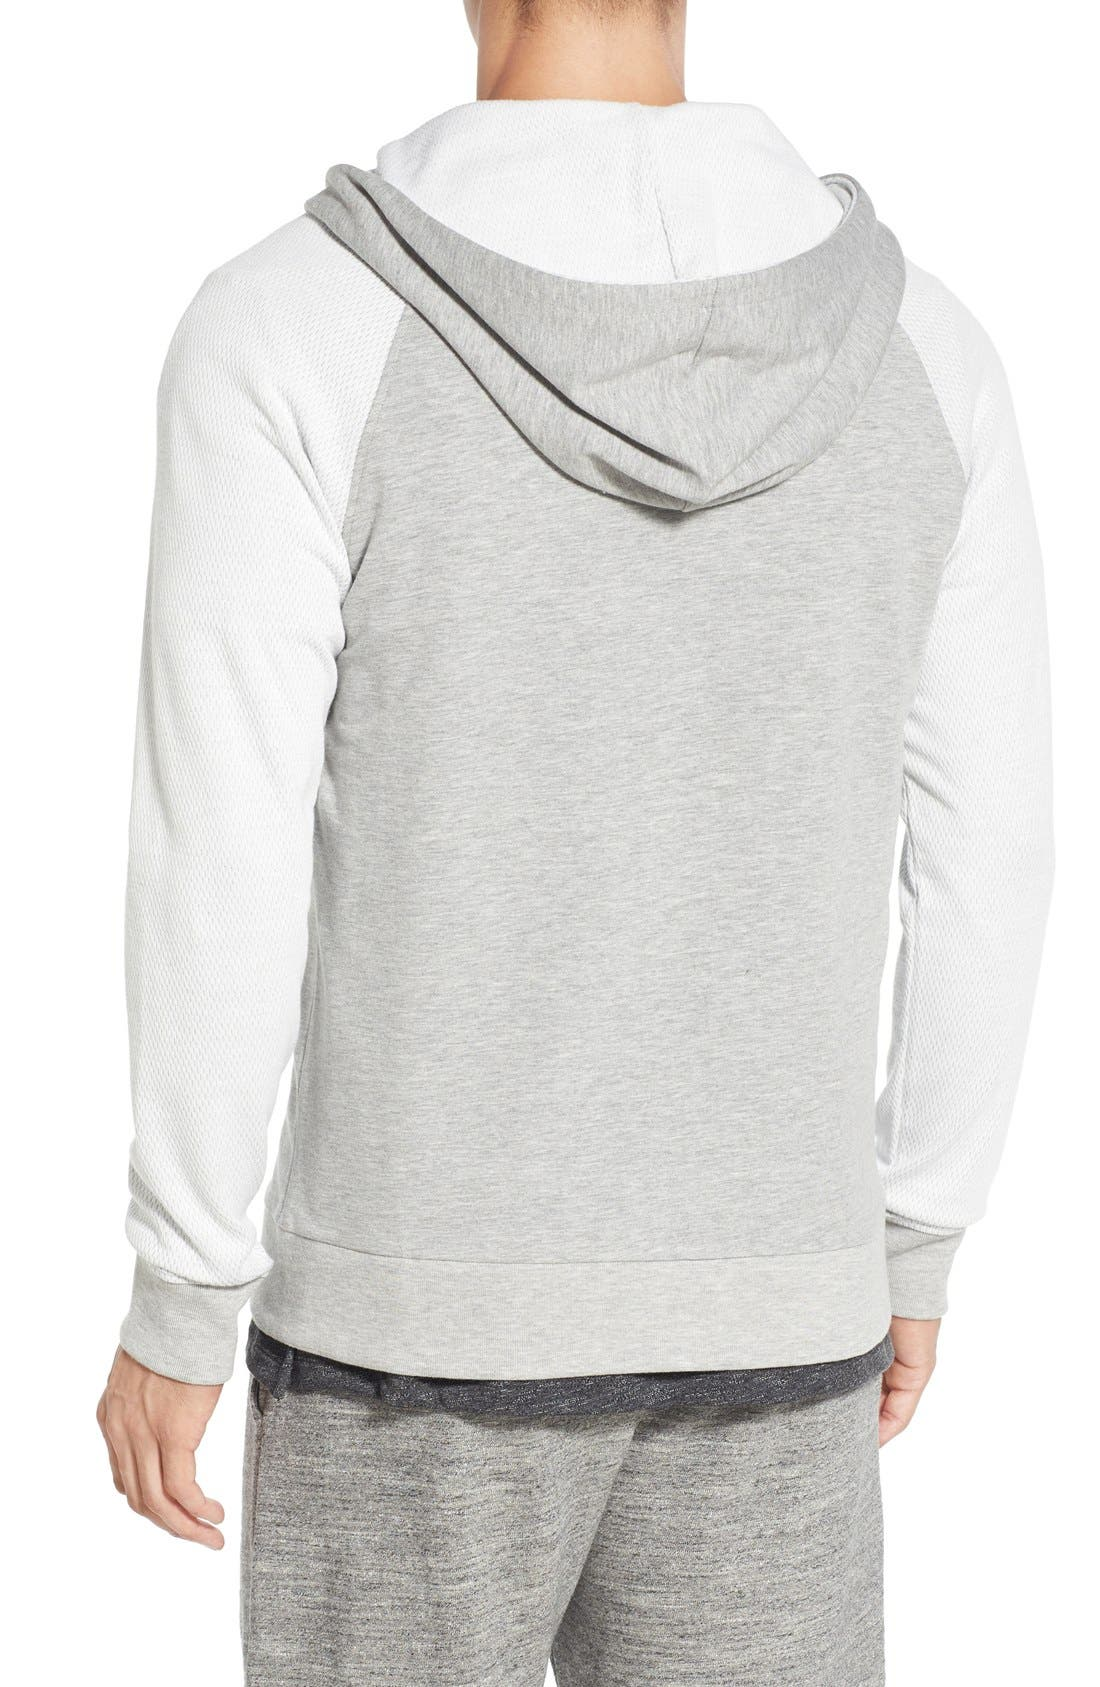 'Baseline' Zip Hoodie,                             Alternate thumbnail 2, color,                             GREY